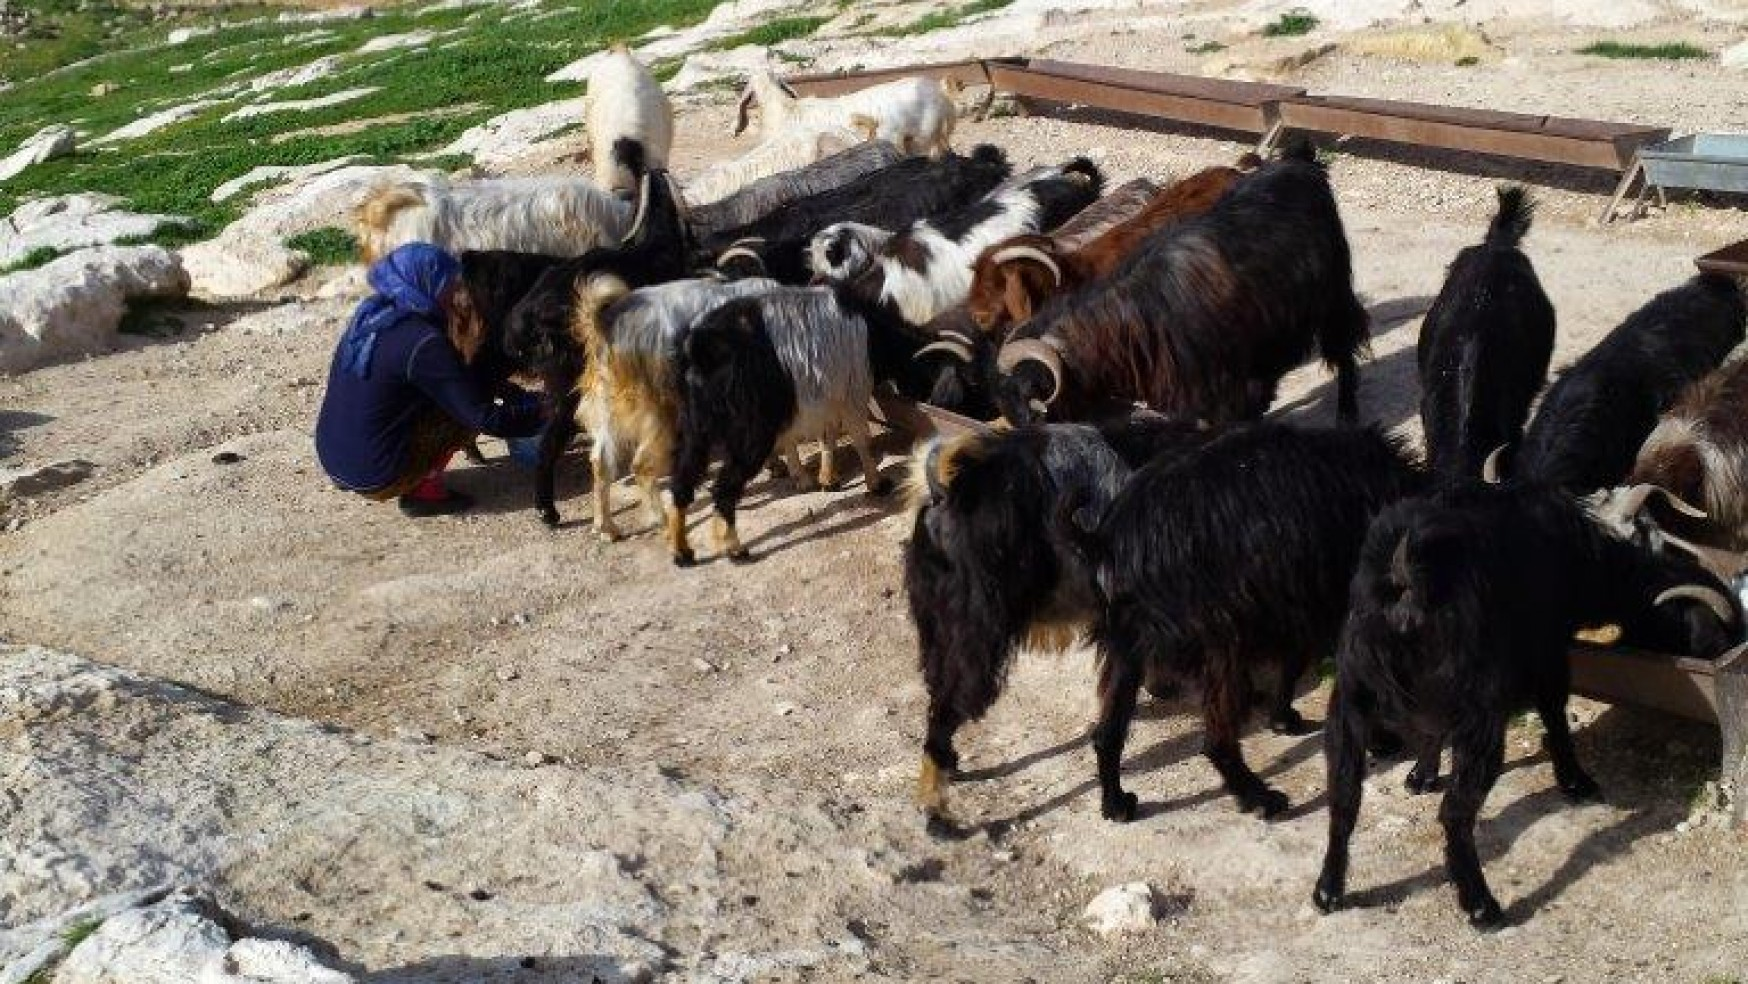 My Friend is a Palestinian Bedouin: VII. Cultural Differences–Honor and Aggression